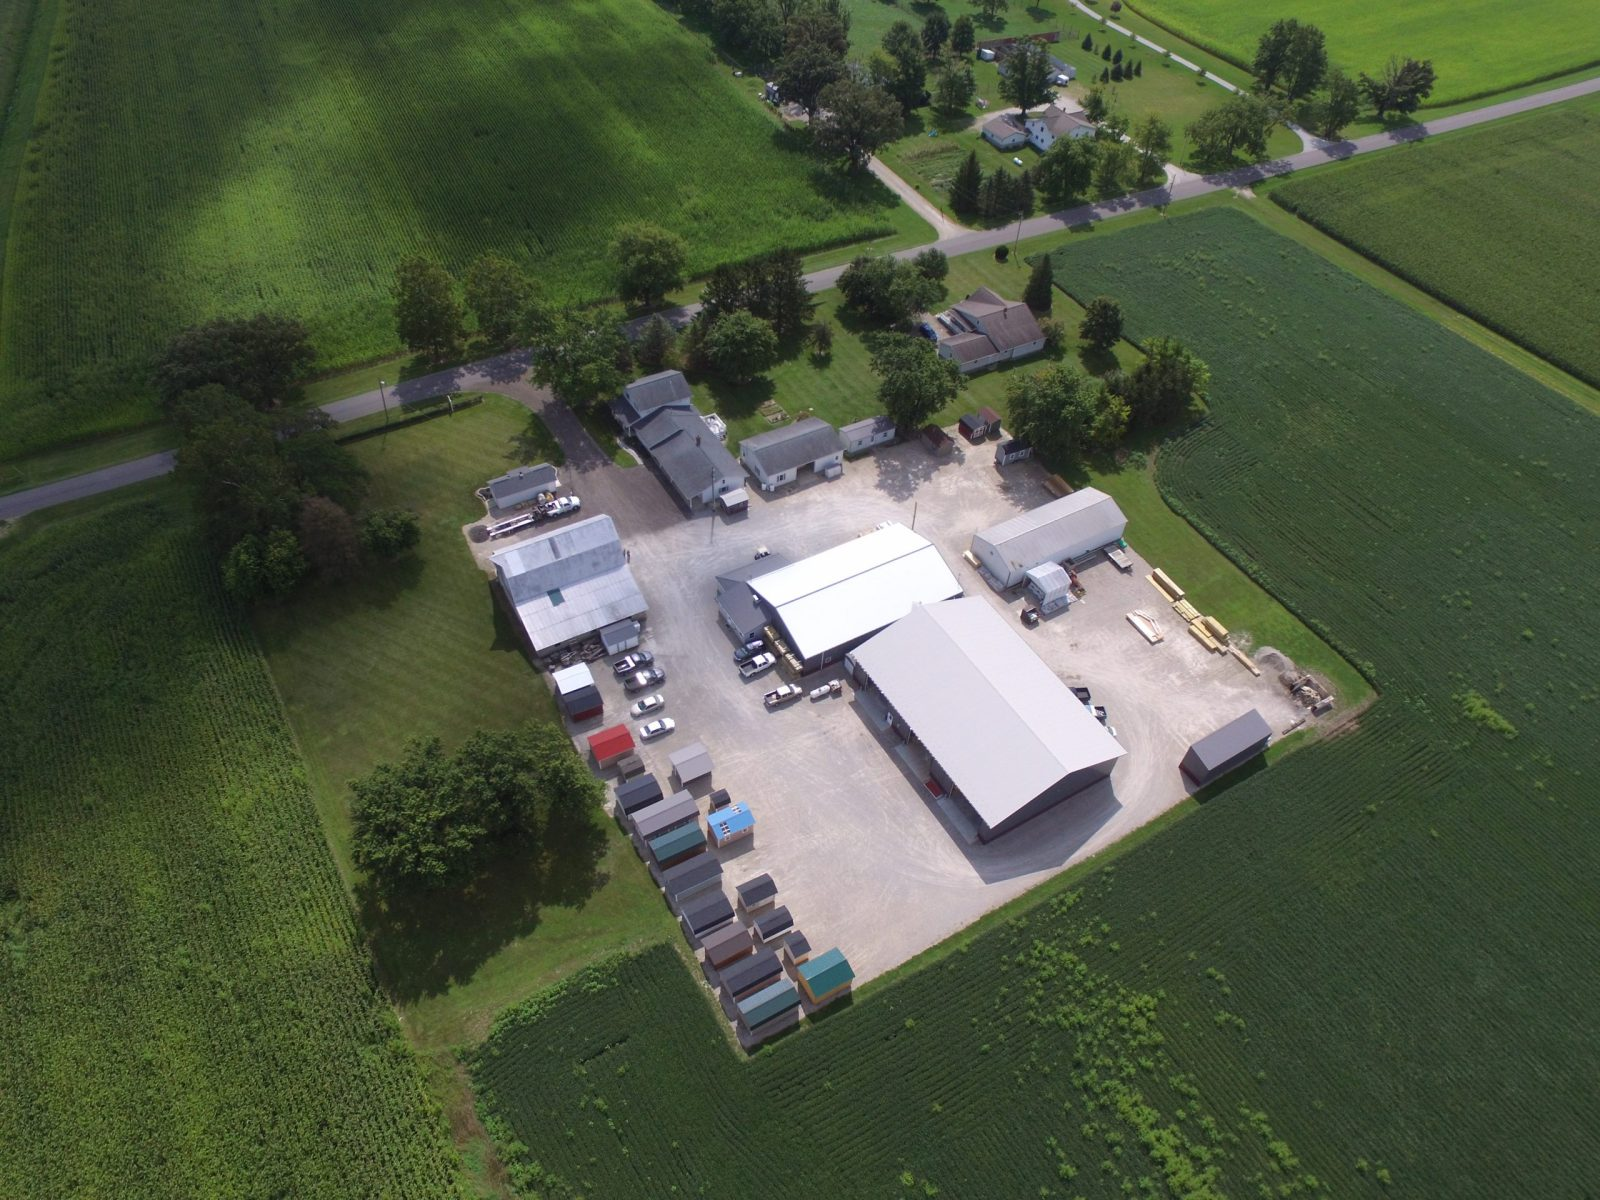 gym shed for sale in Ohio